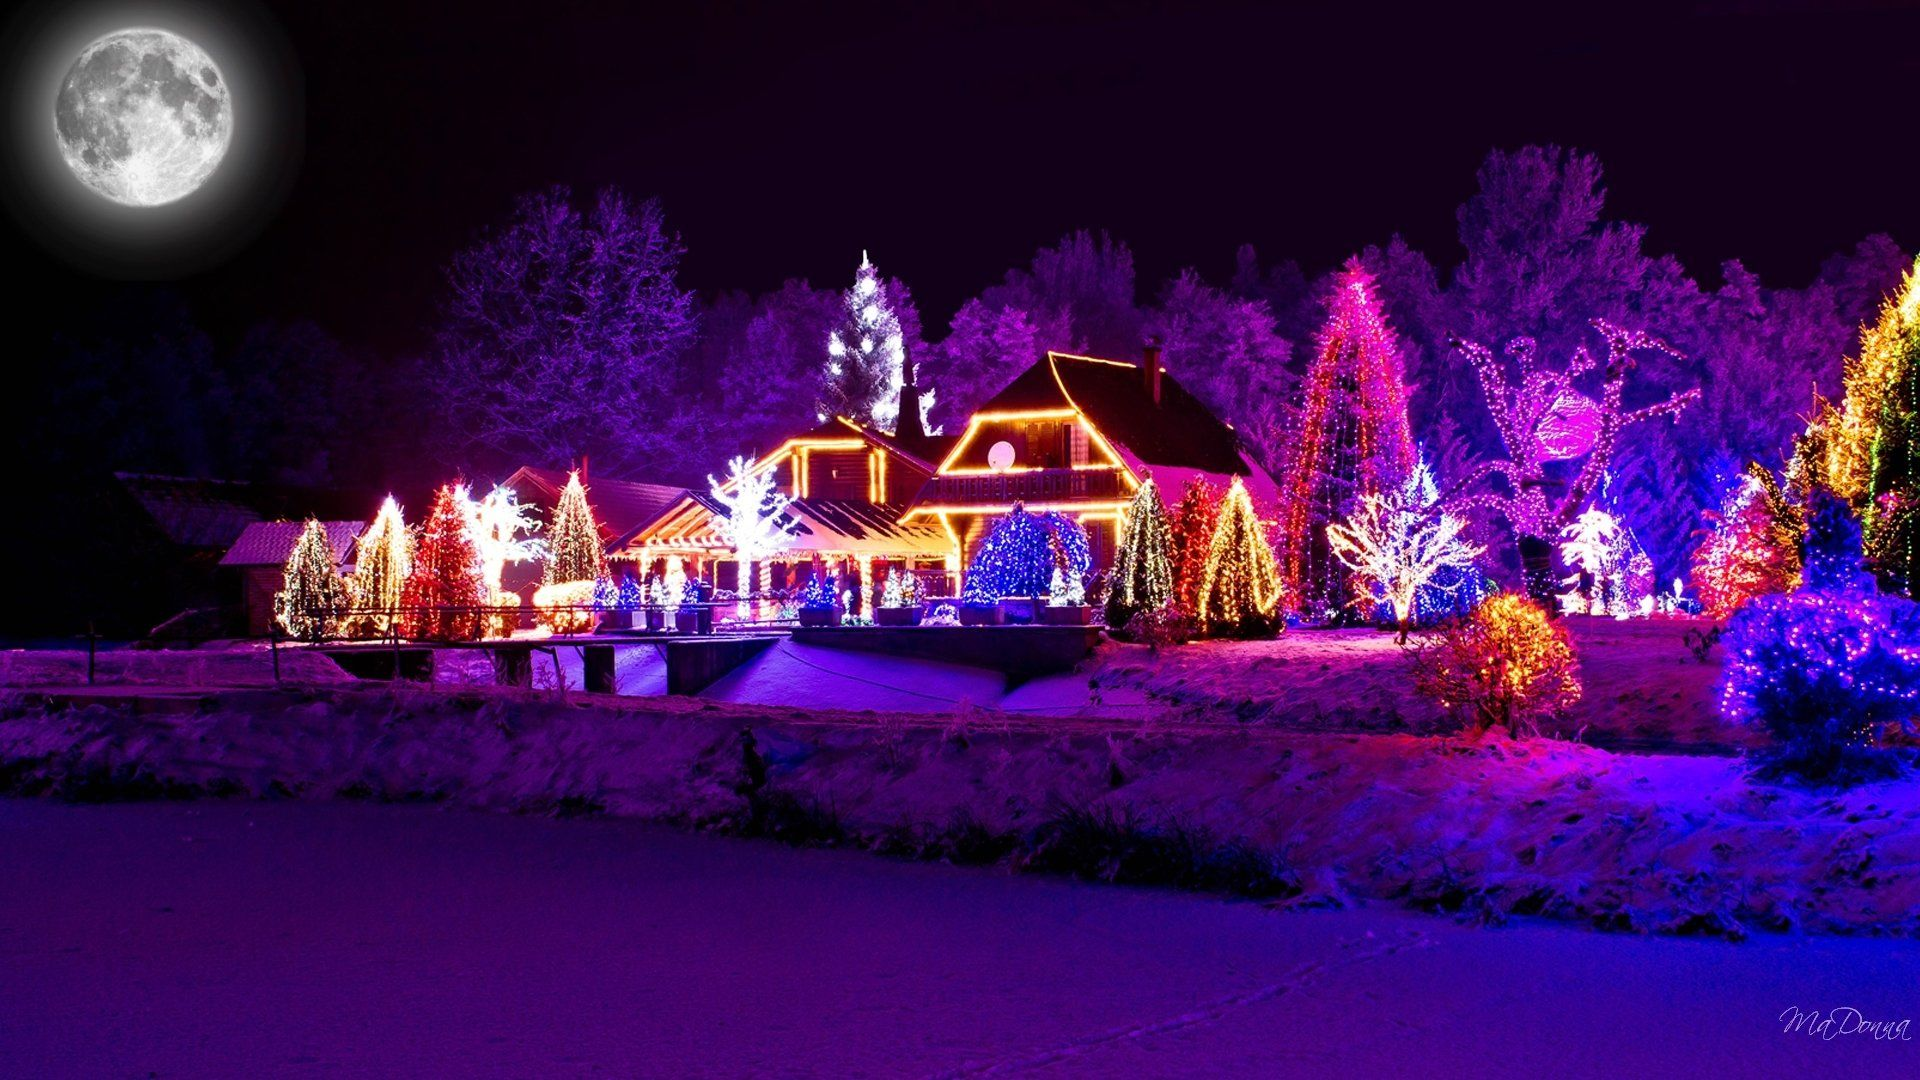 Christmas Lights Wallpaper Designs and Decorations